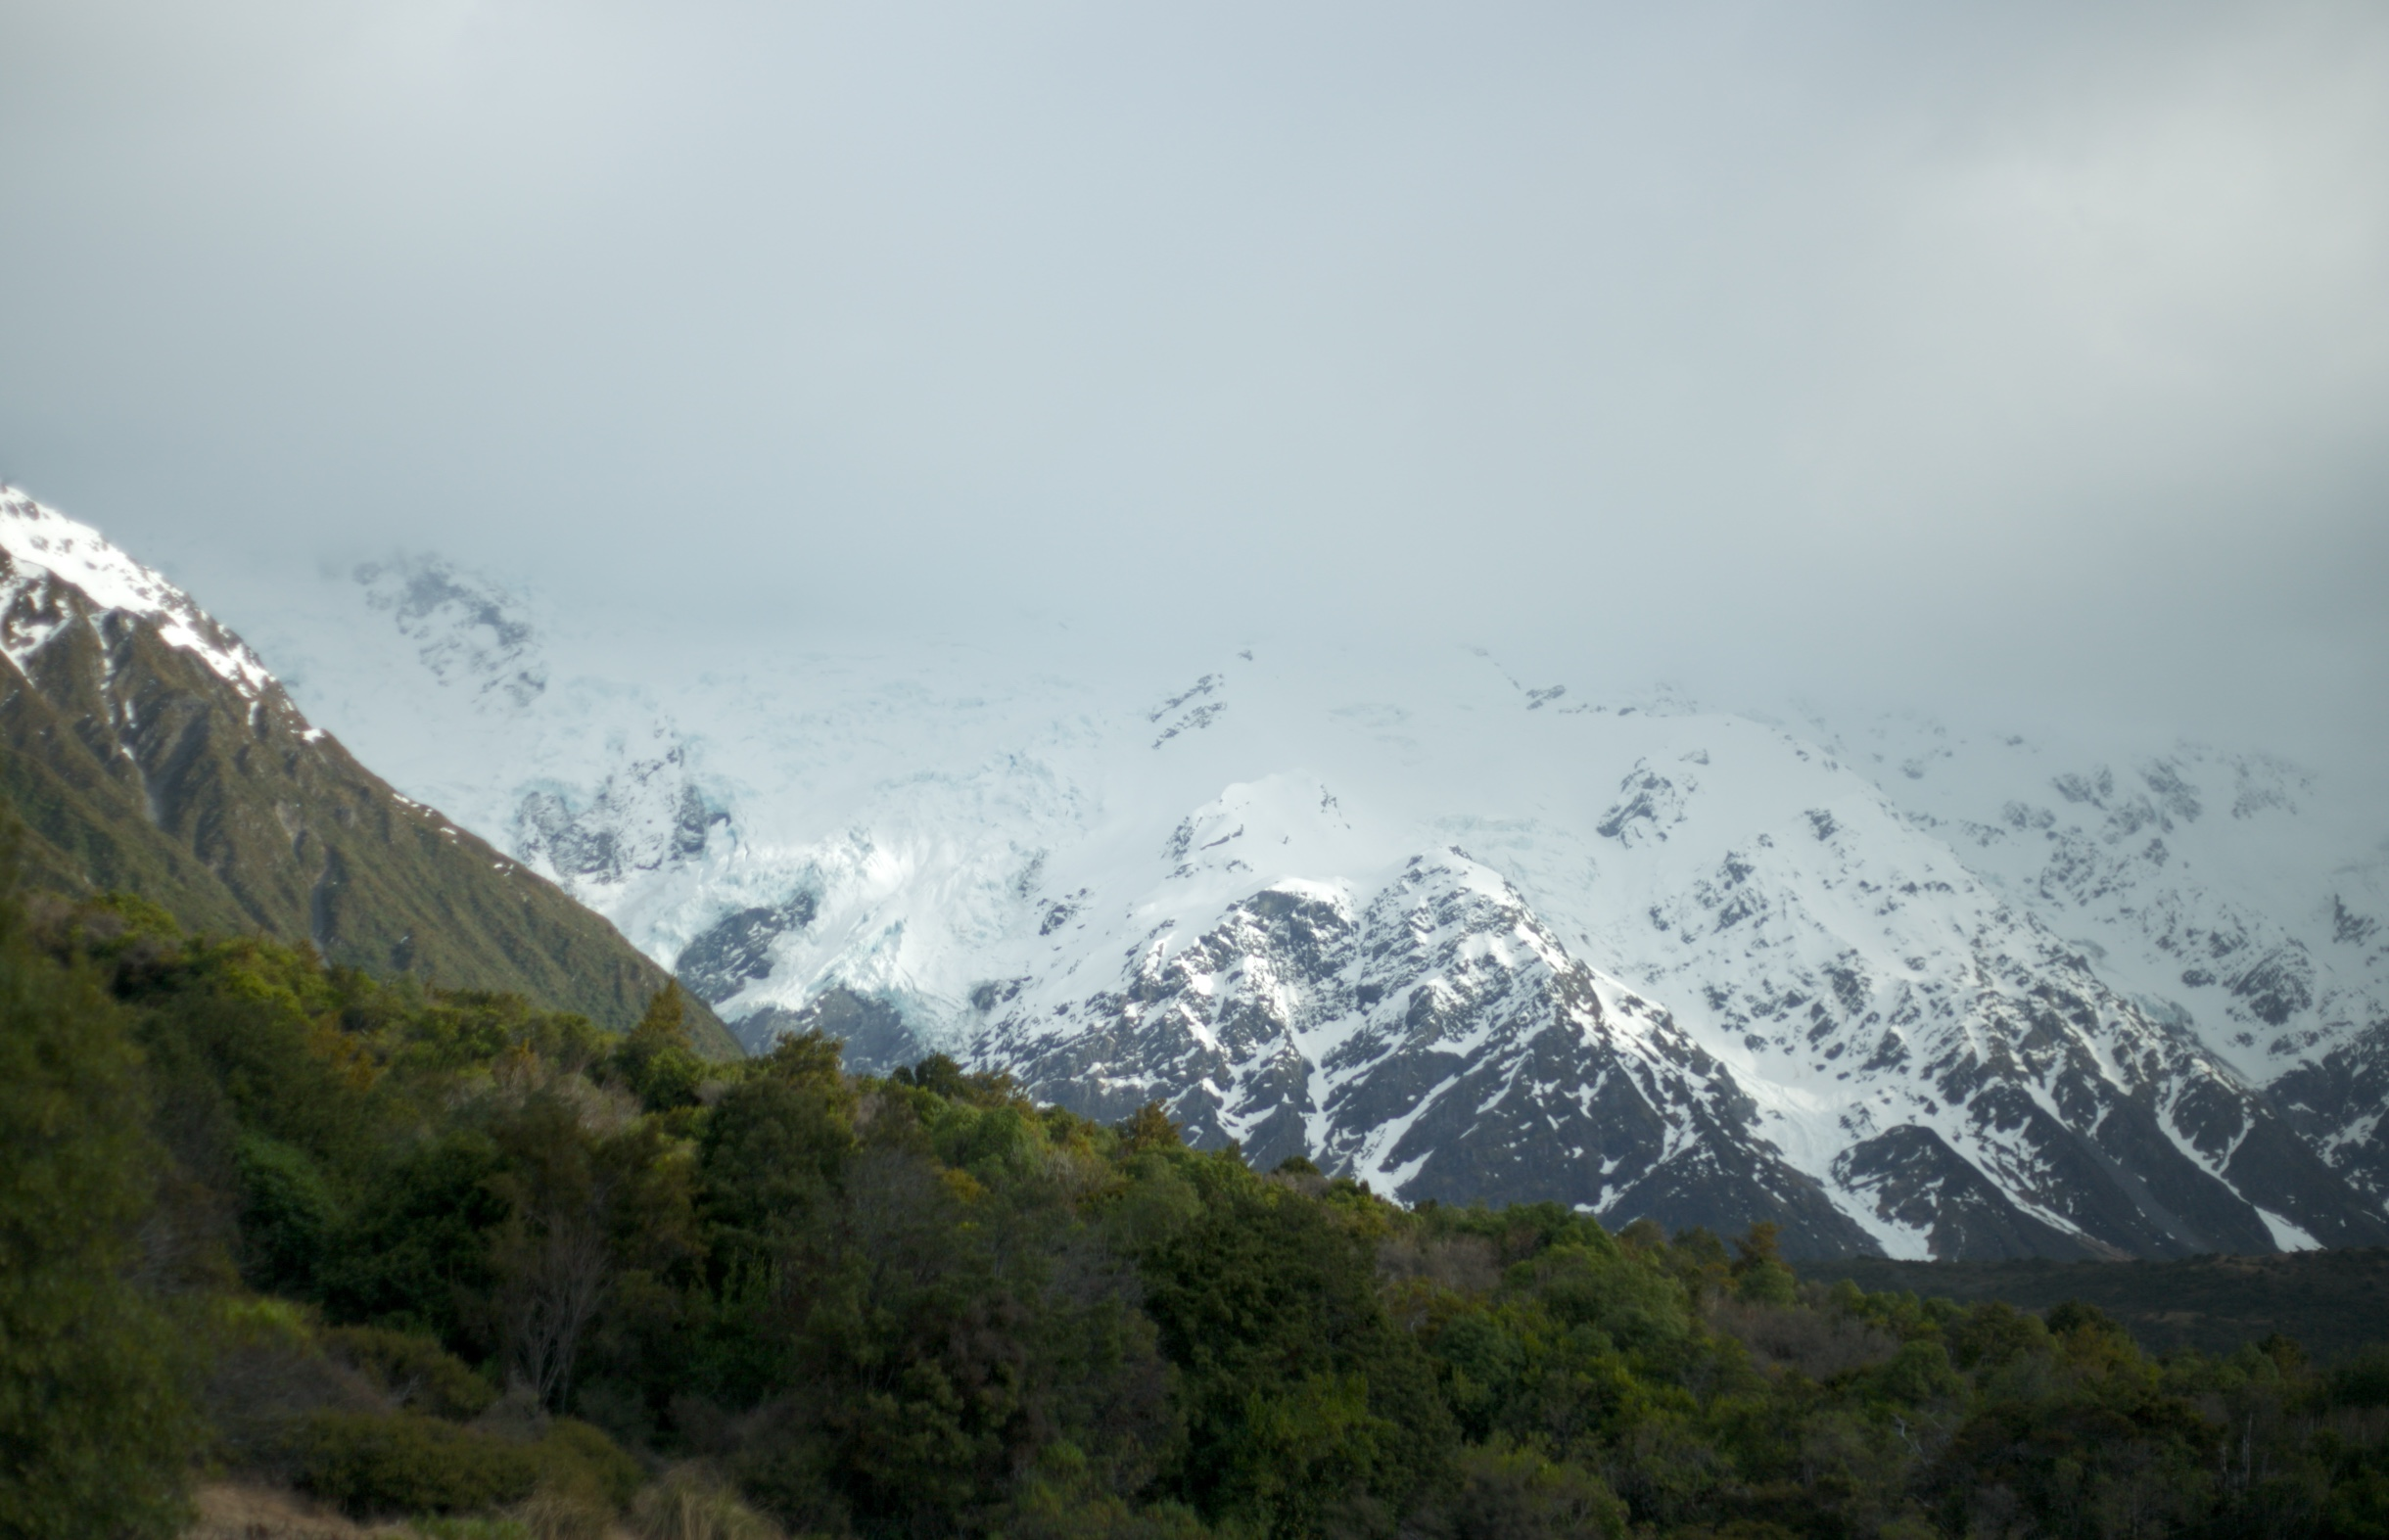 New Zealand mount cook shrouded in fog, like Caradhras, from Lord of the Rings.